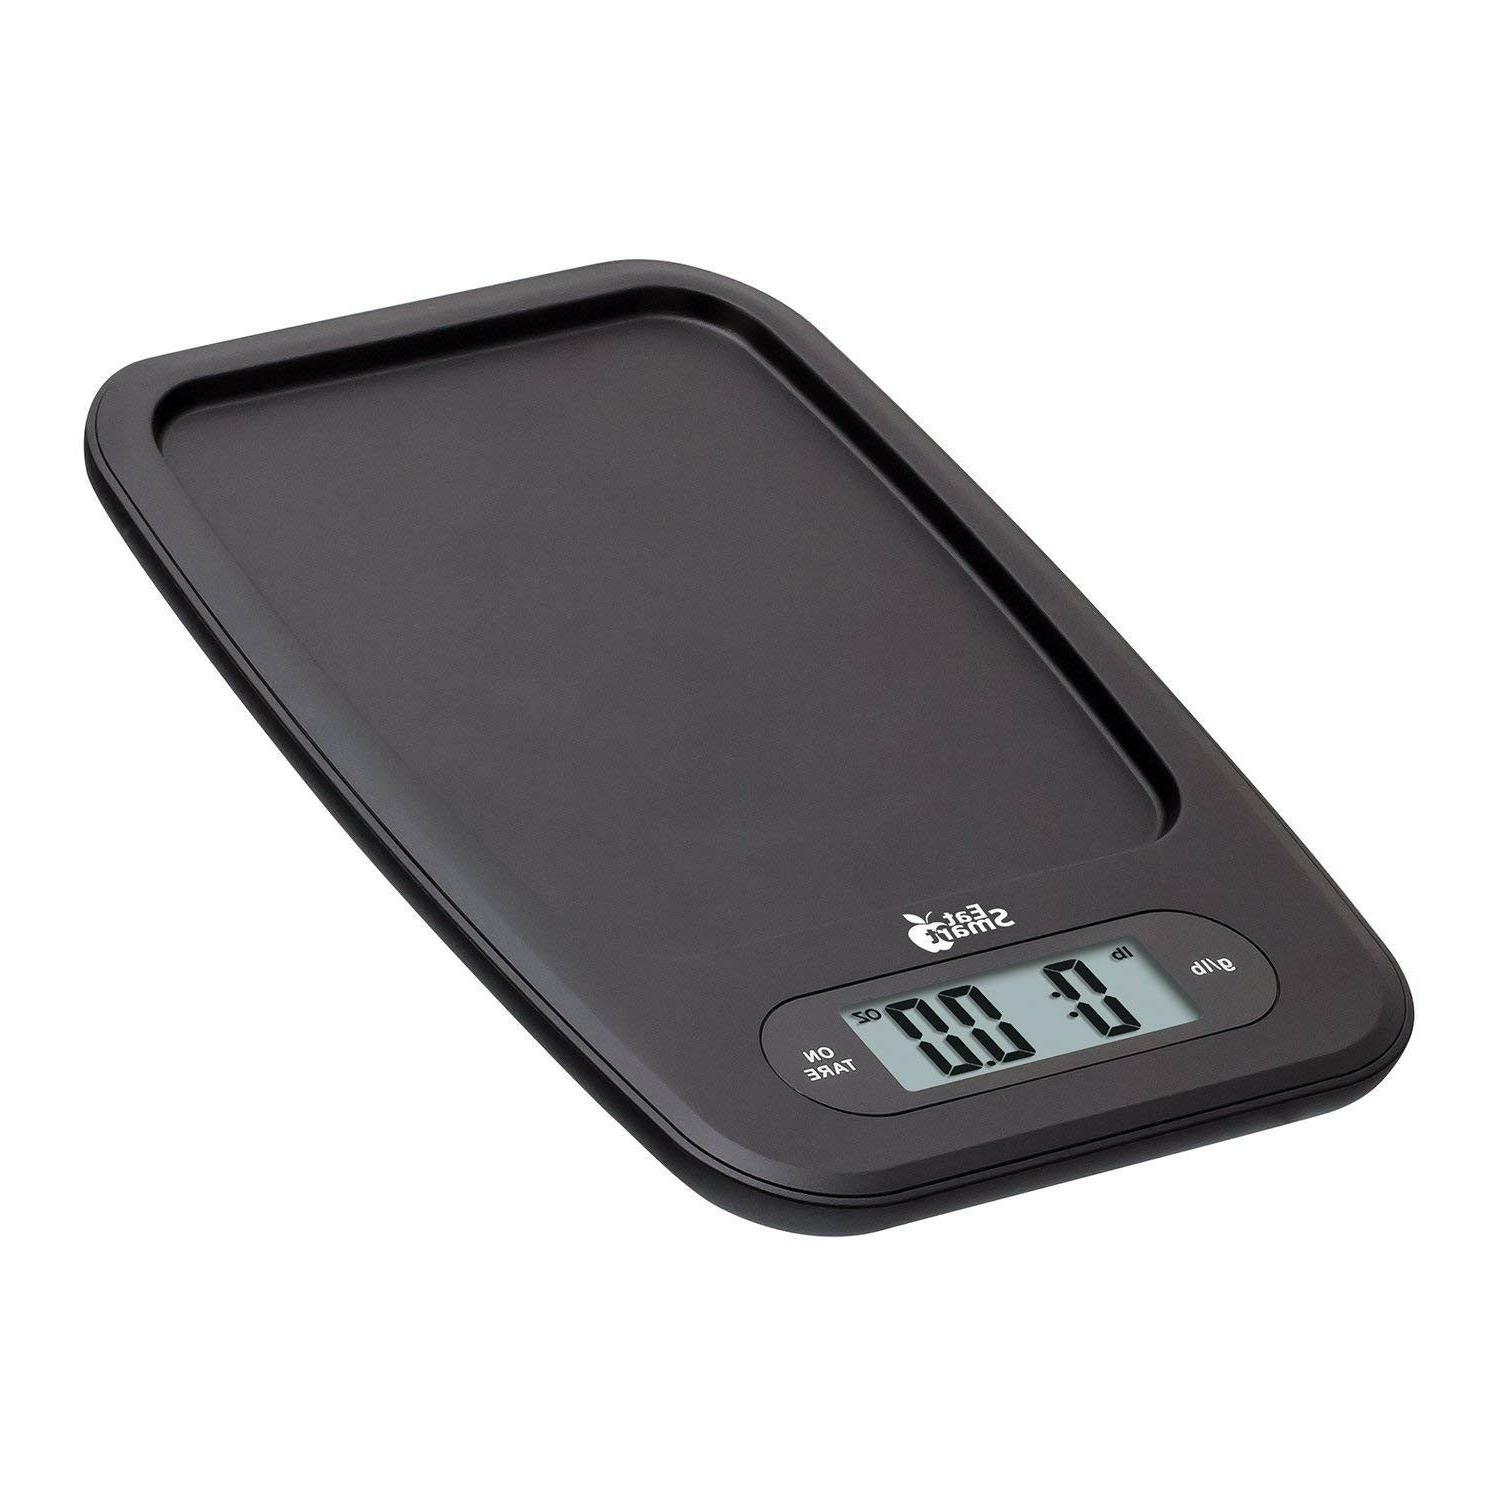 food measuring scale small kitchen weighing baking